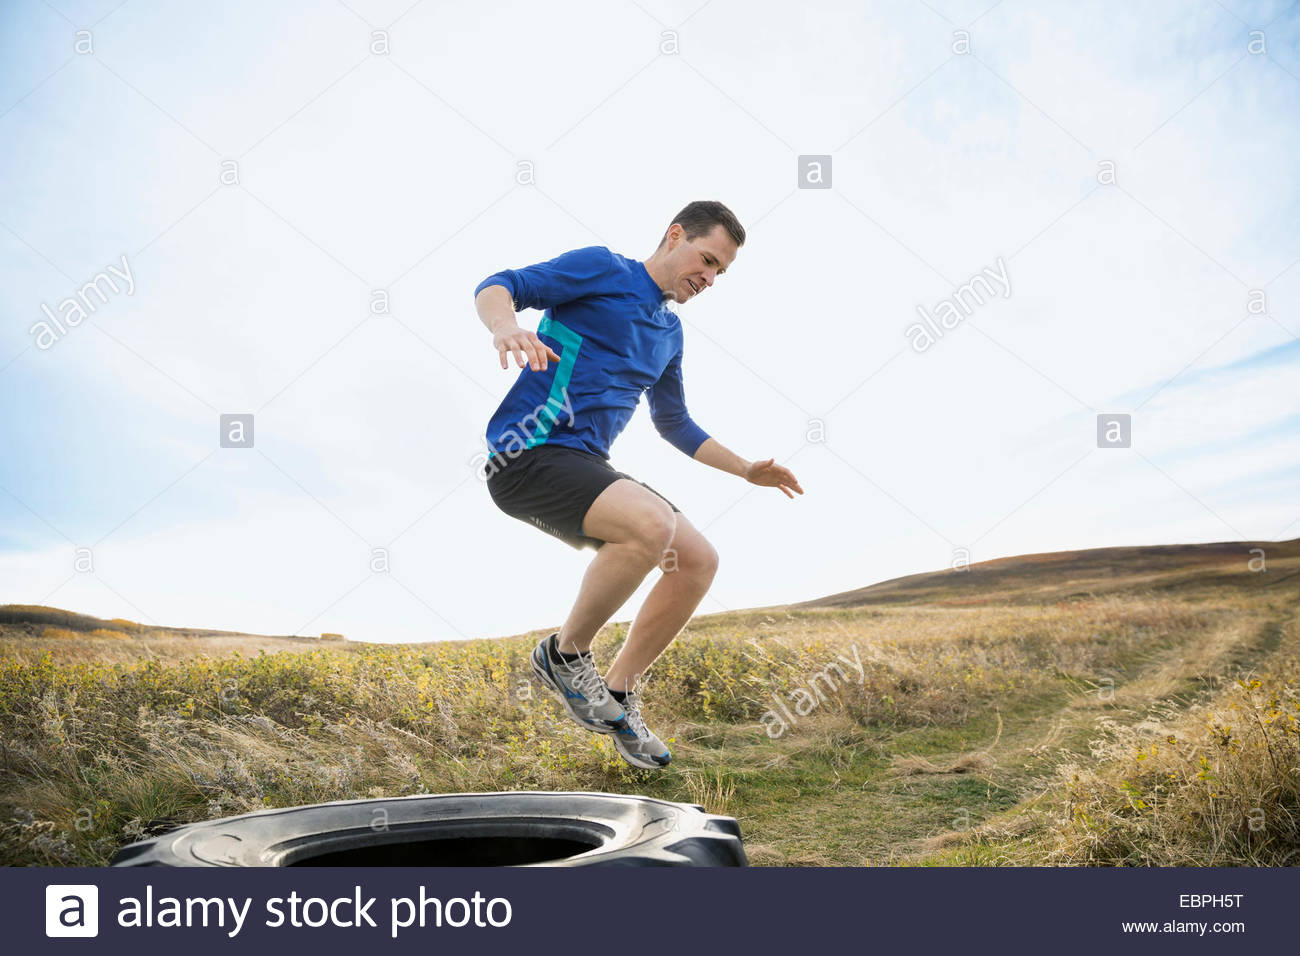 Man jumping crossfit tire in sunny rural field - Stock Image